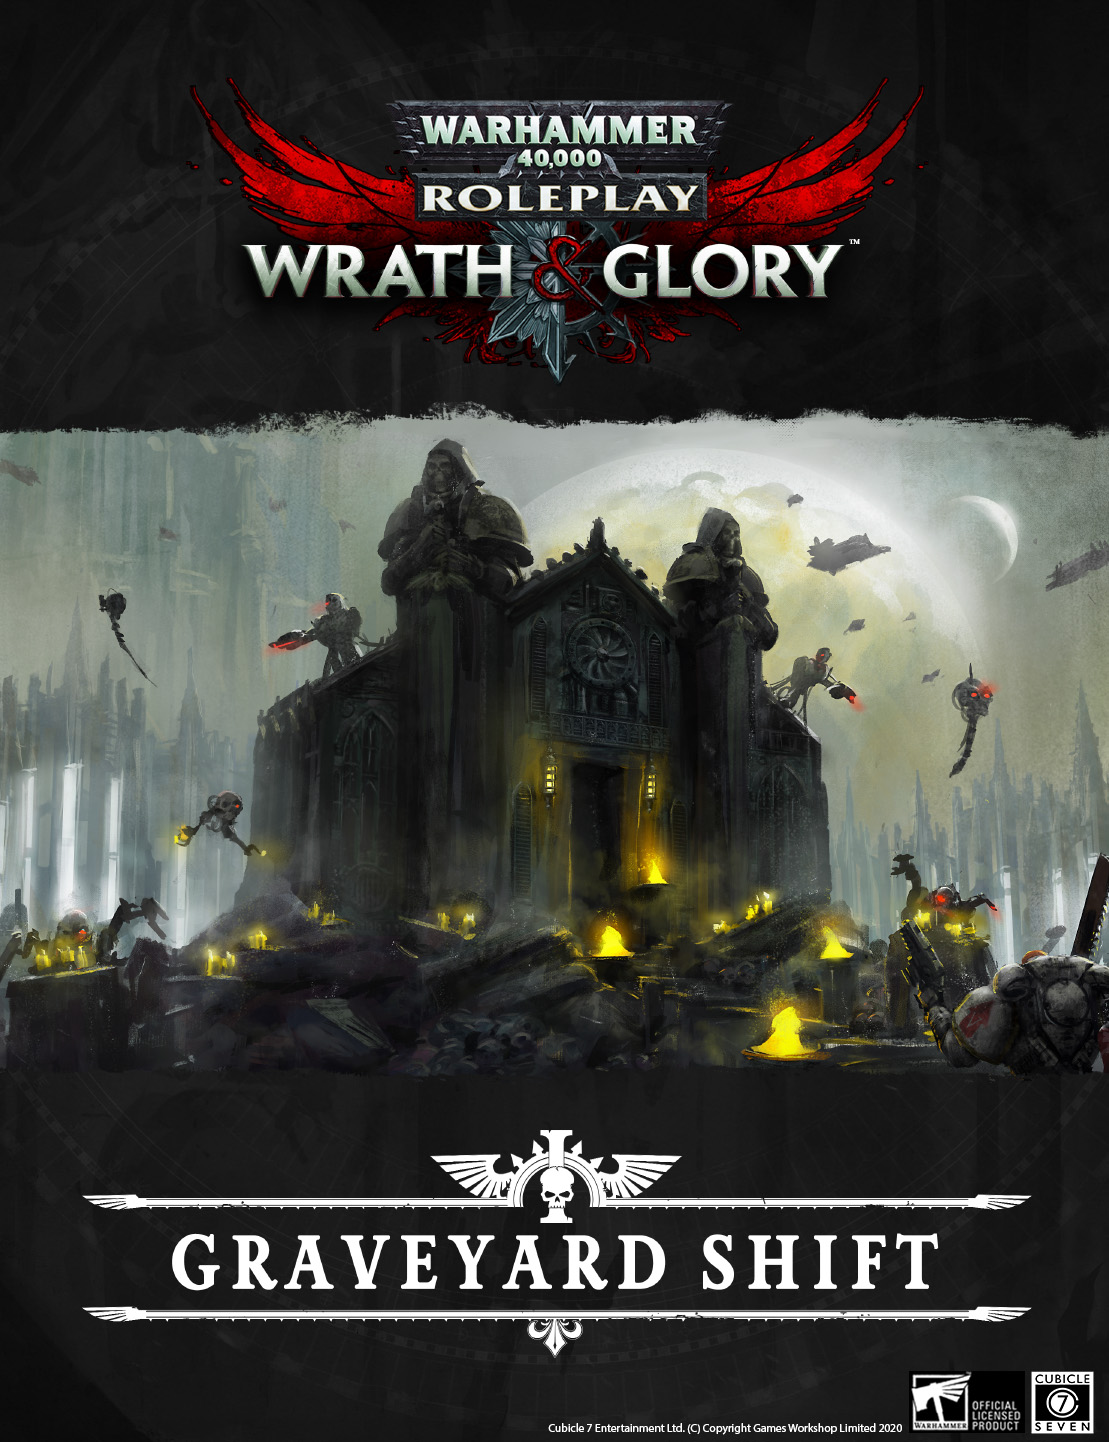 Warhammer 40k Free Adventure PDF Out Now!